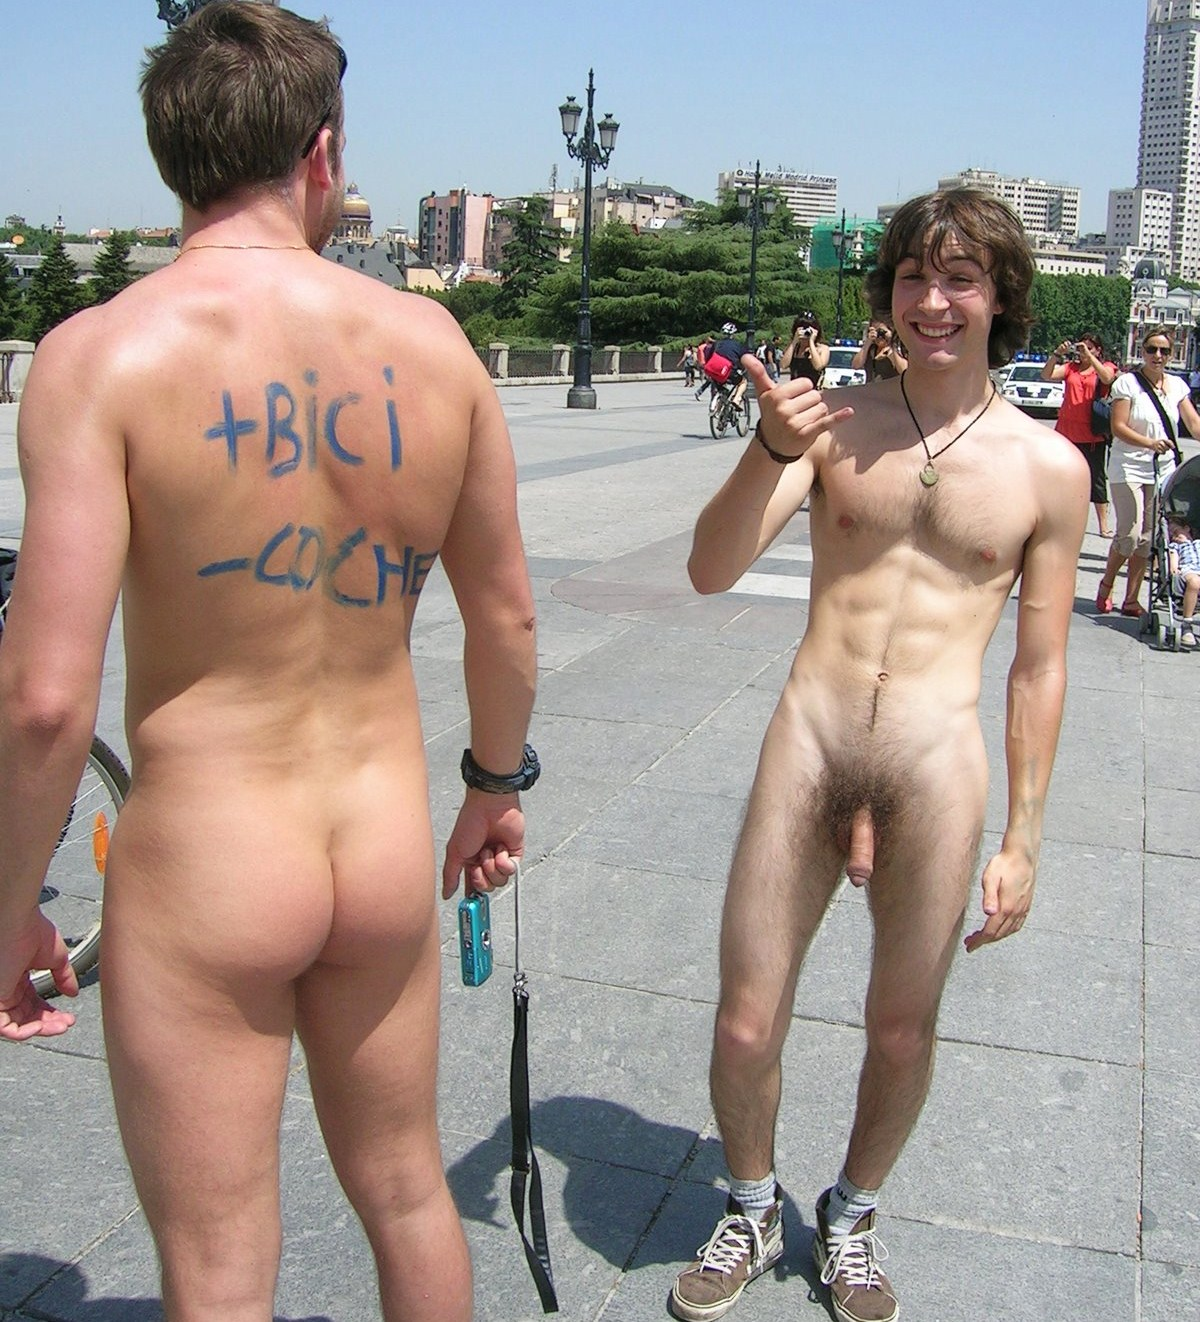 Apologise, public soft nude gay man pics agree